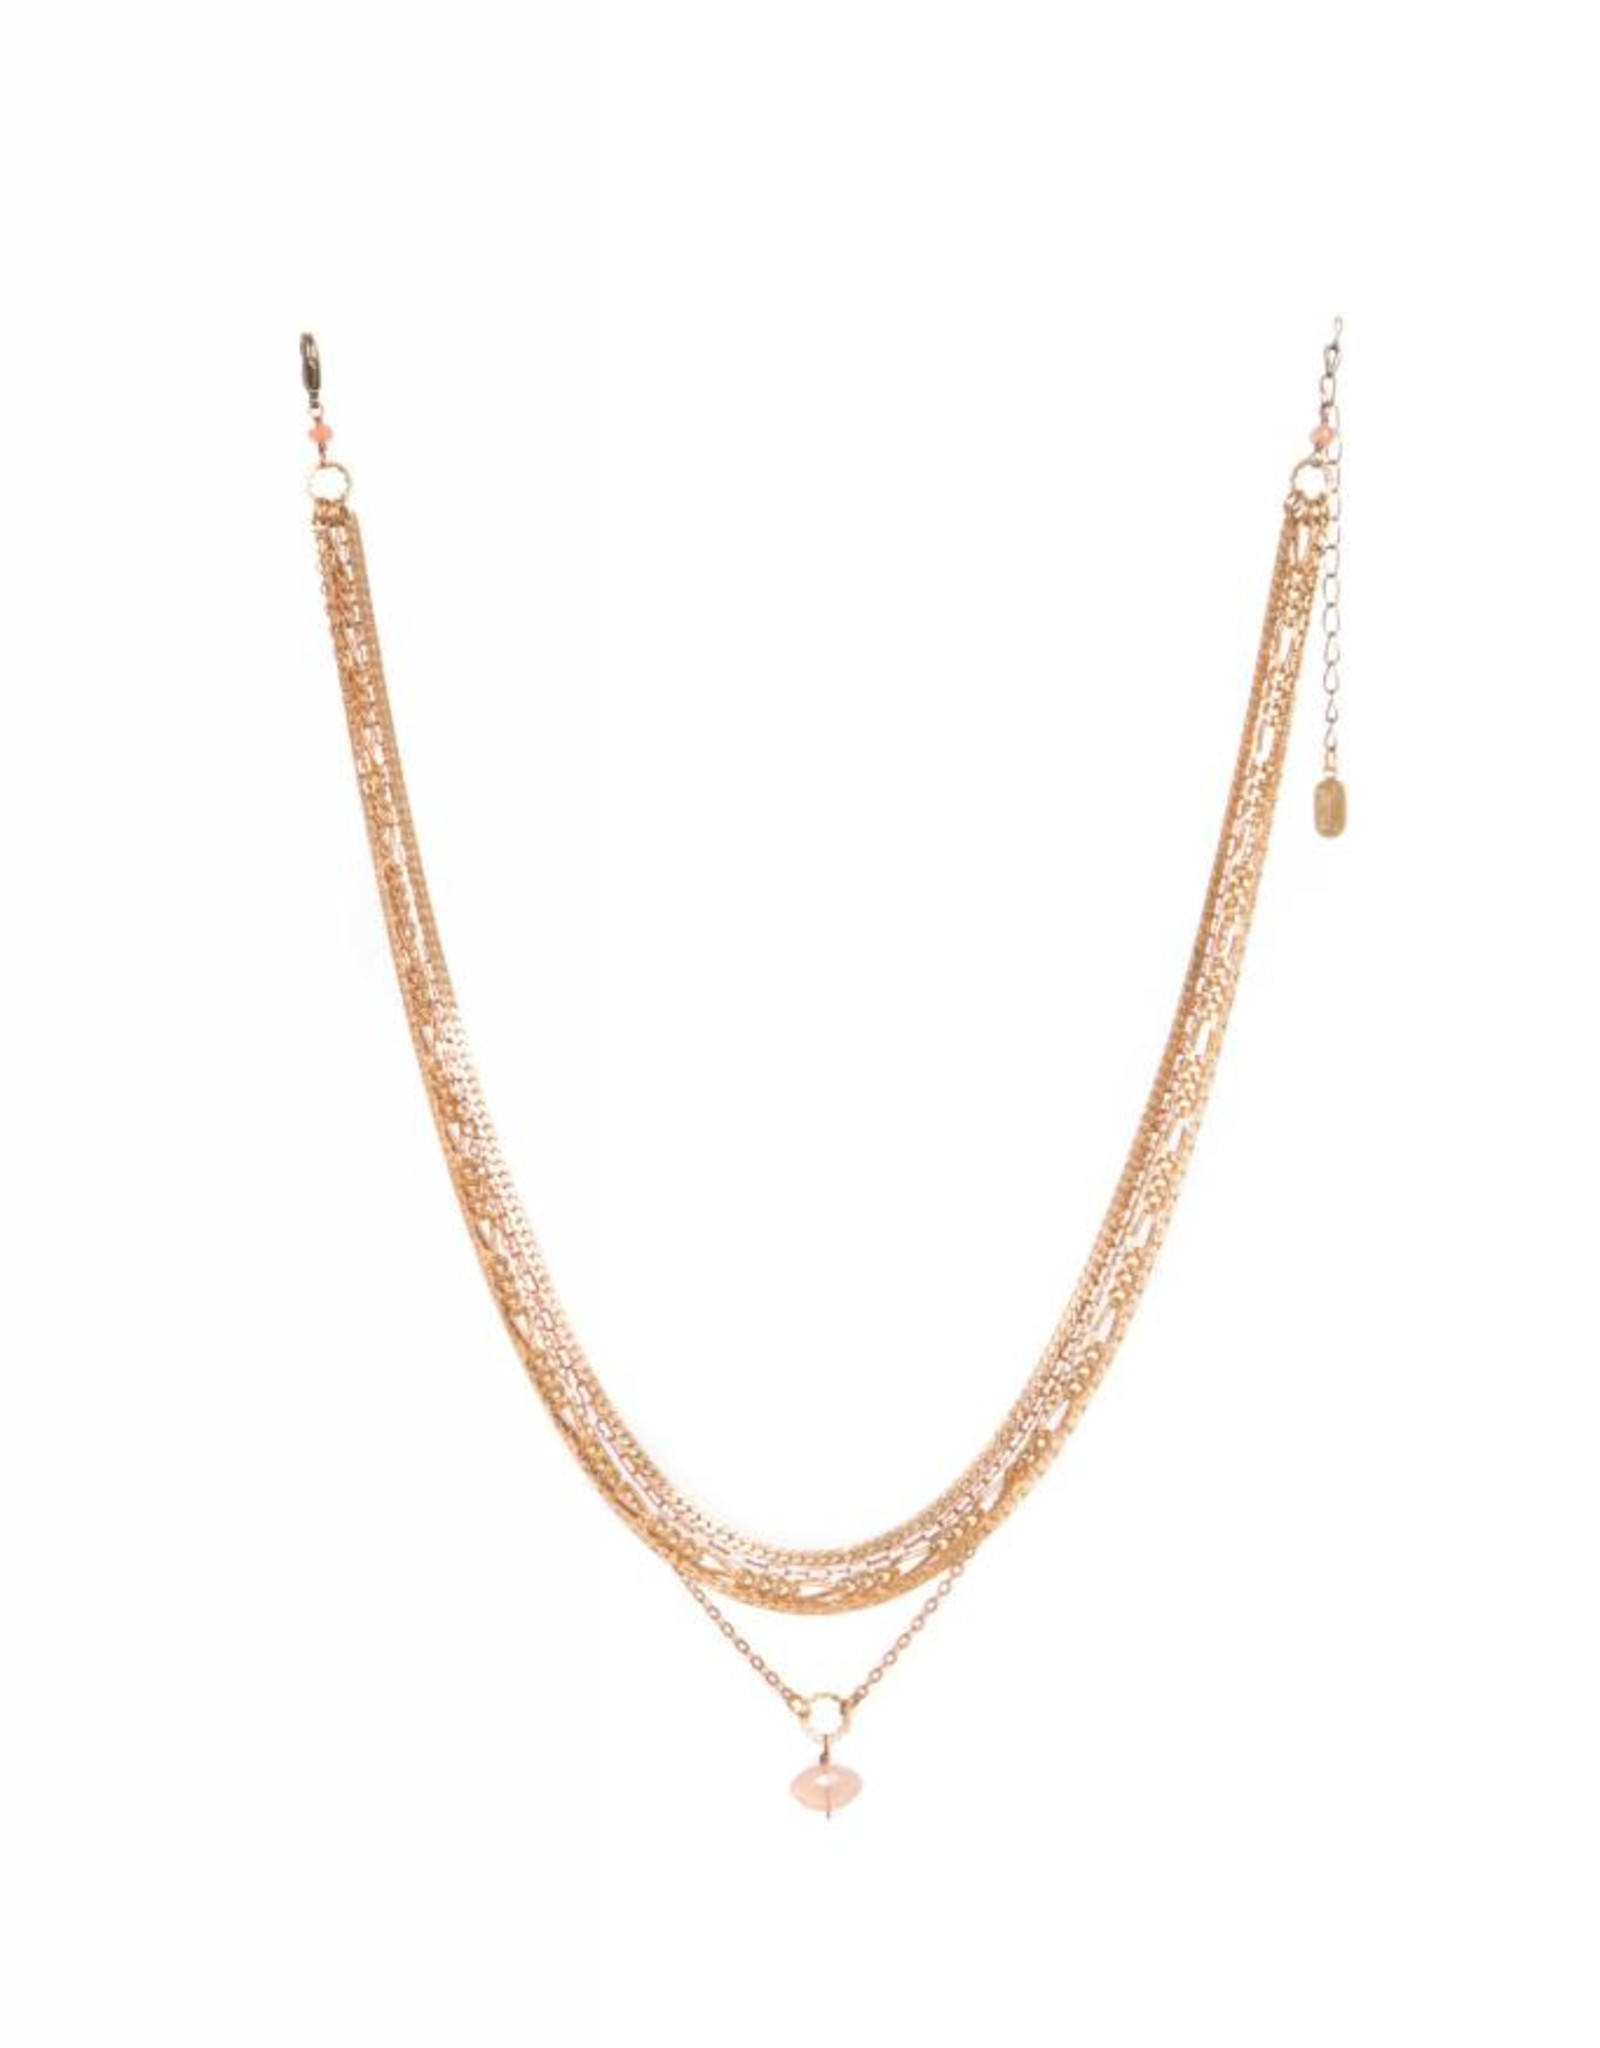 Hailey Gerrits Designs Gaia Necklace - Peach Moonstone